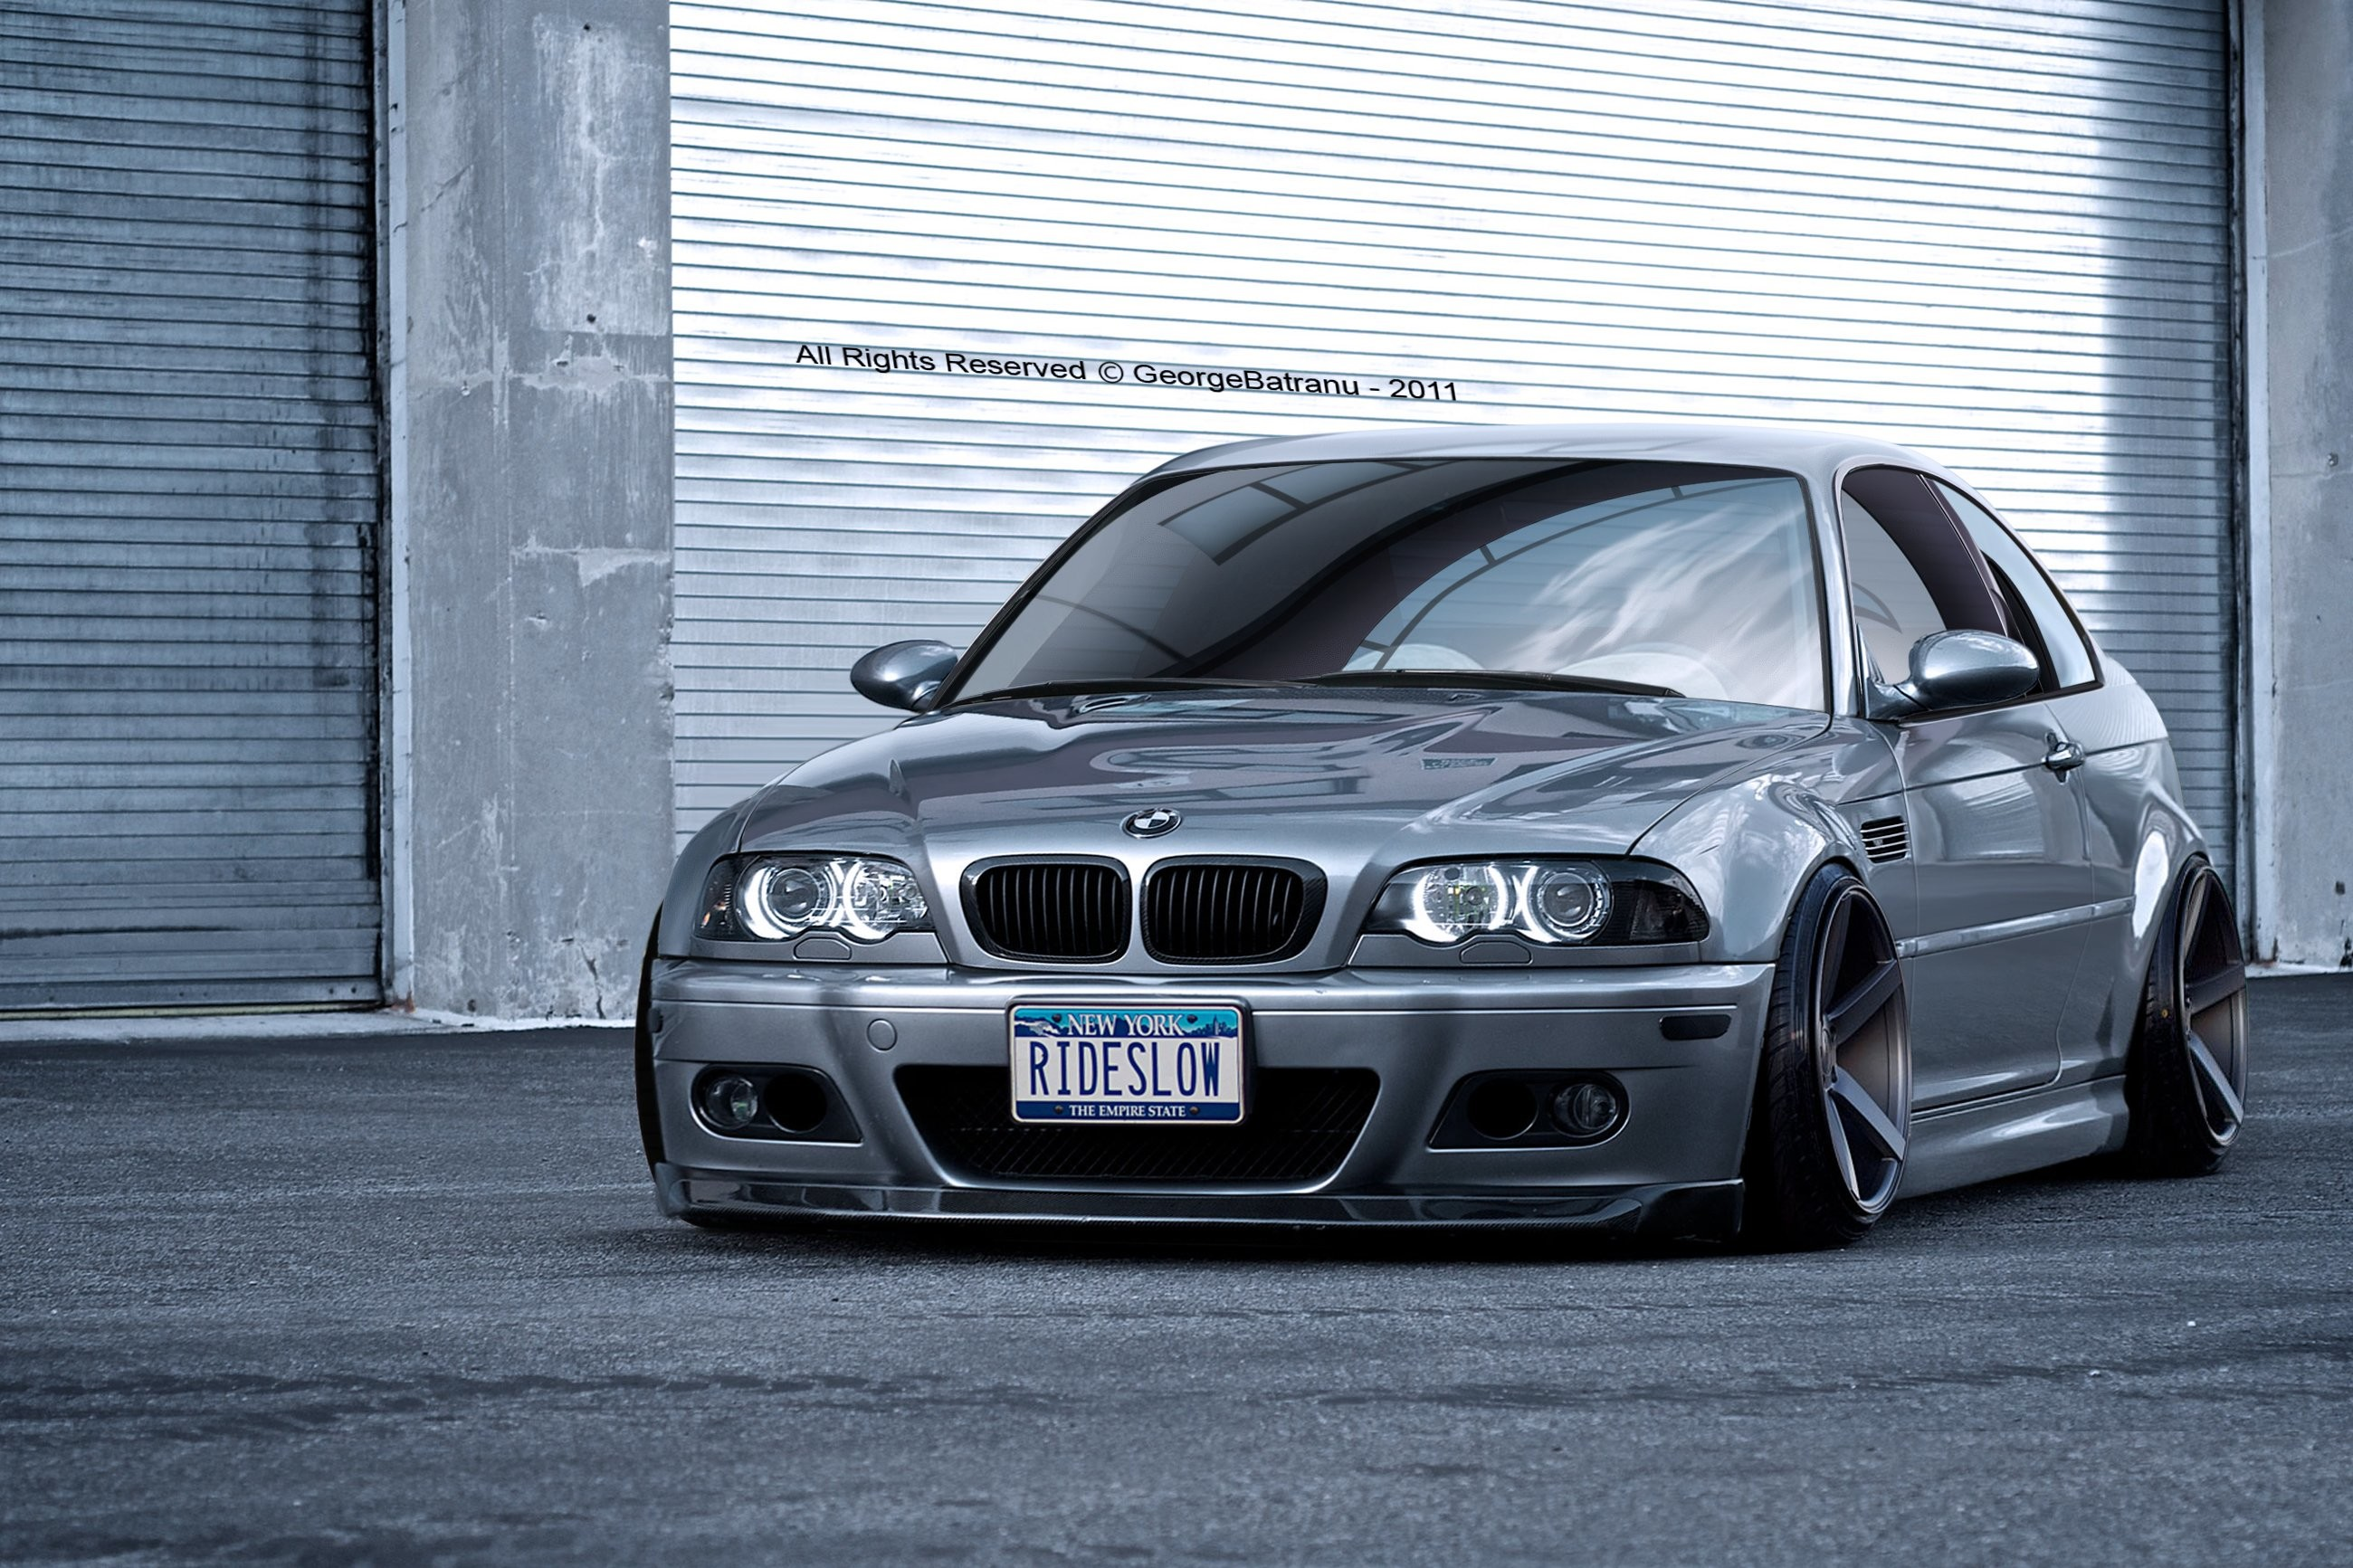 1920x1080 car rims river bench e46 bmw wallpapers hd desktop and mobile backgrounds